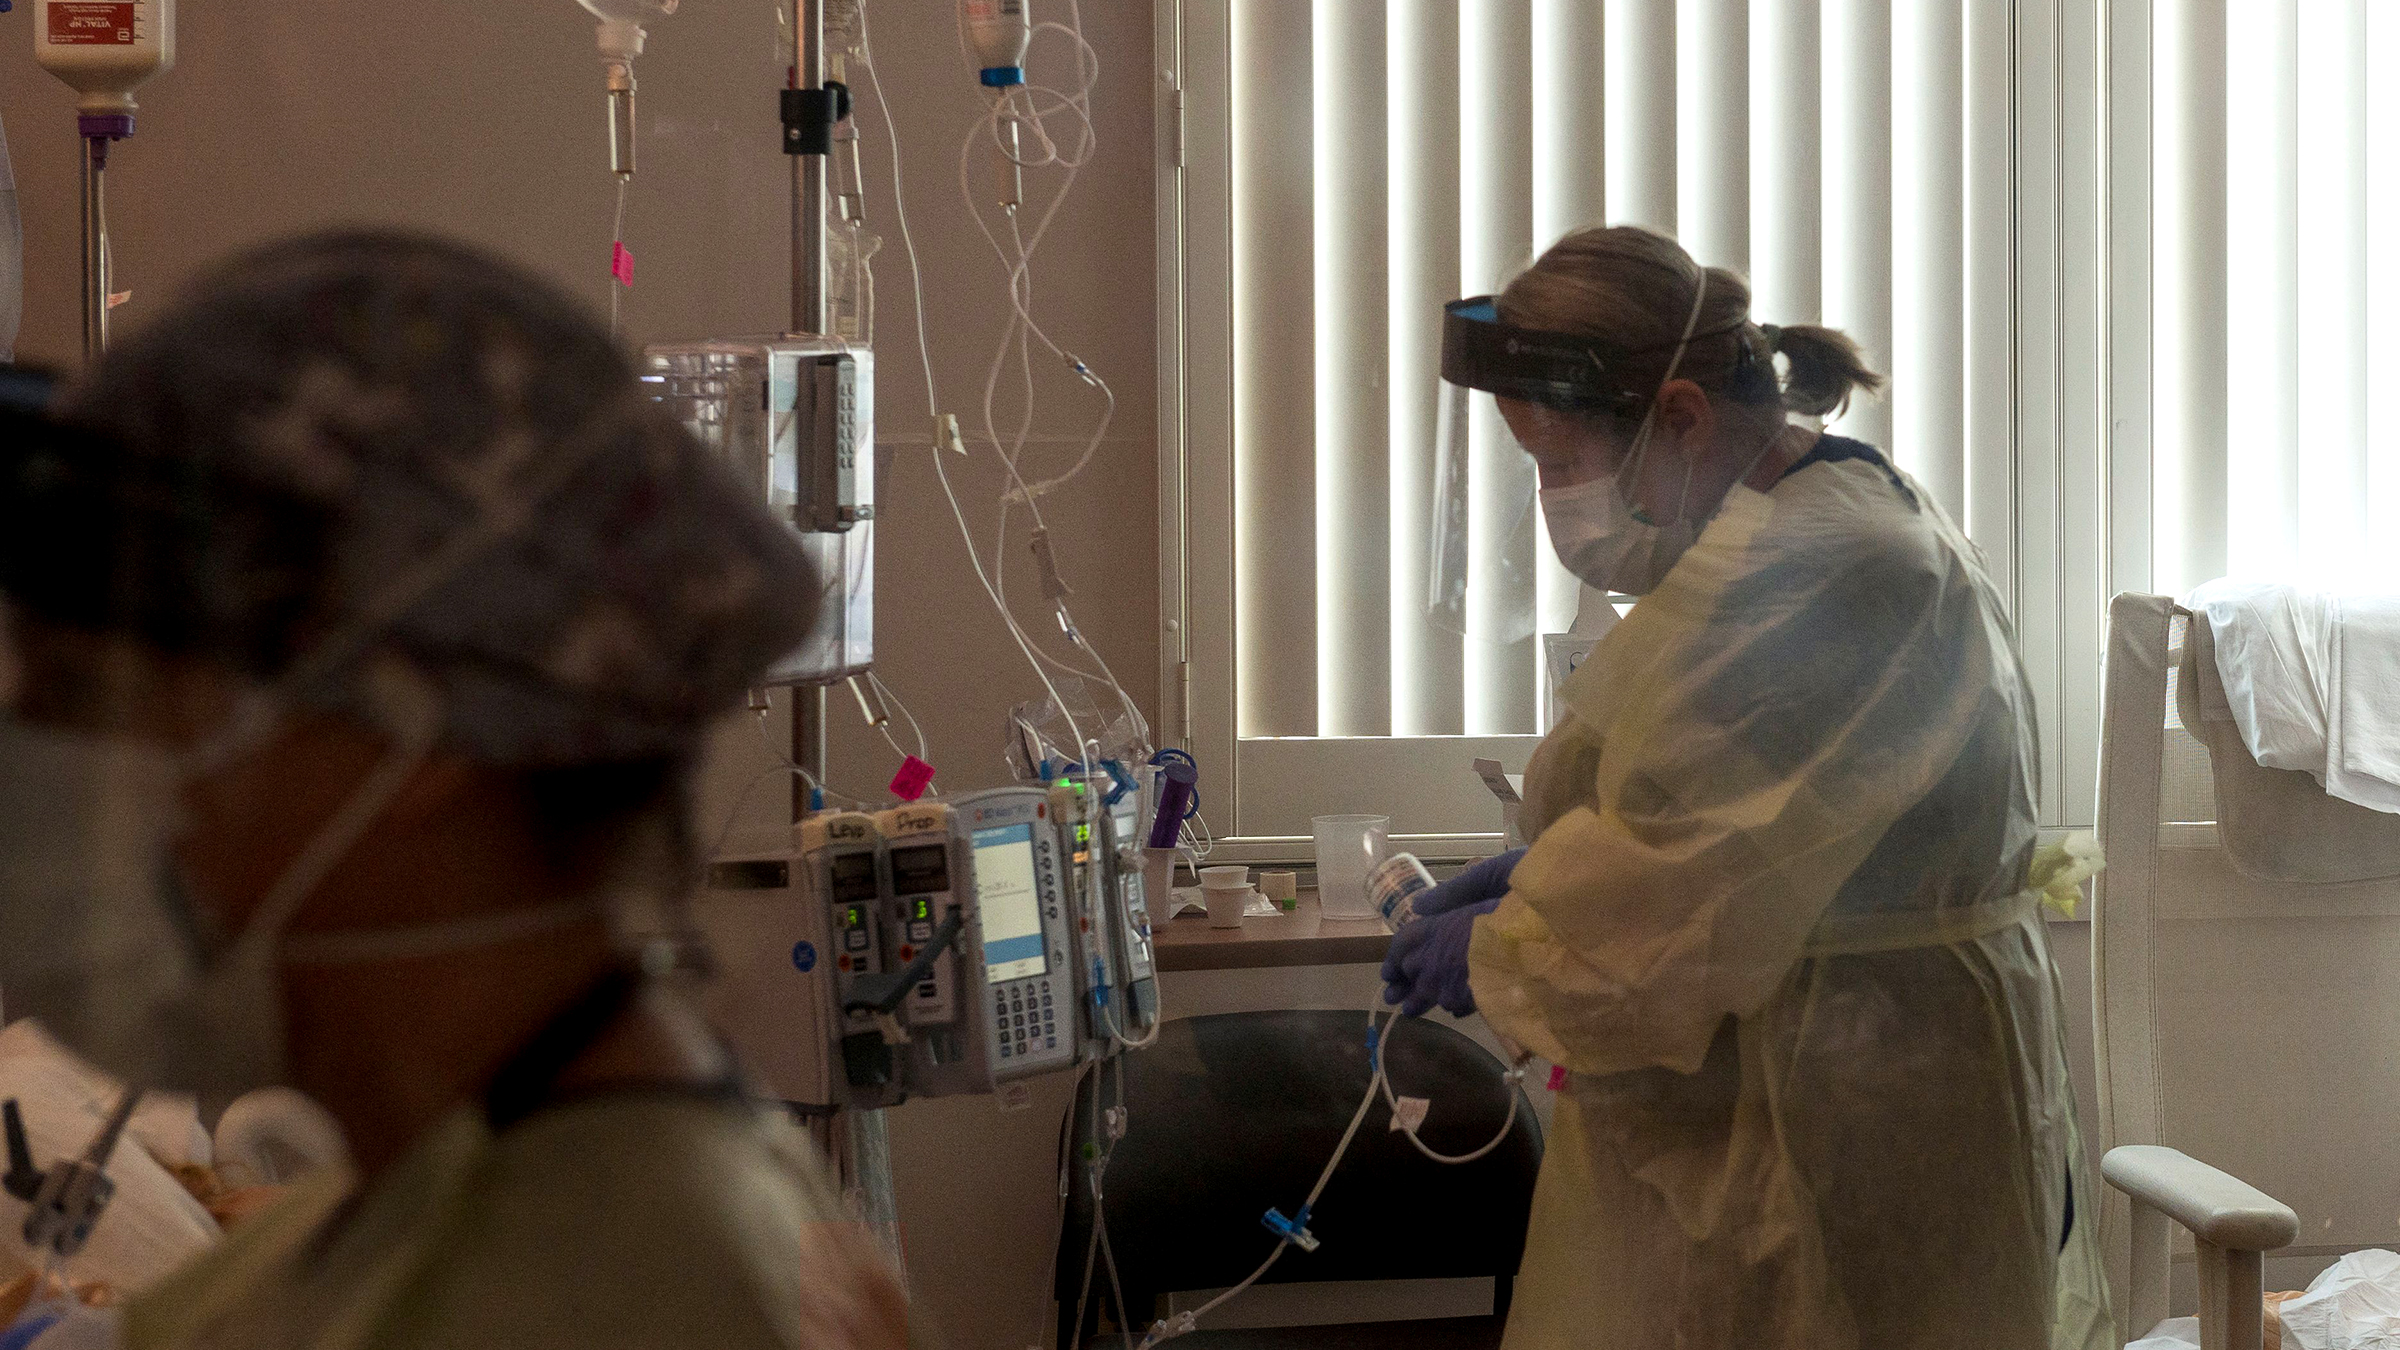 A registered nurse tends to a Covid-19 patient inside the intensive care unit at Adventist Health in Sonora, California, on August 27.